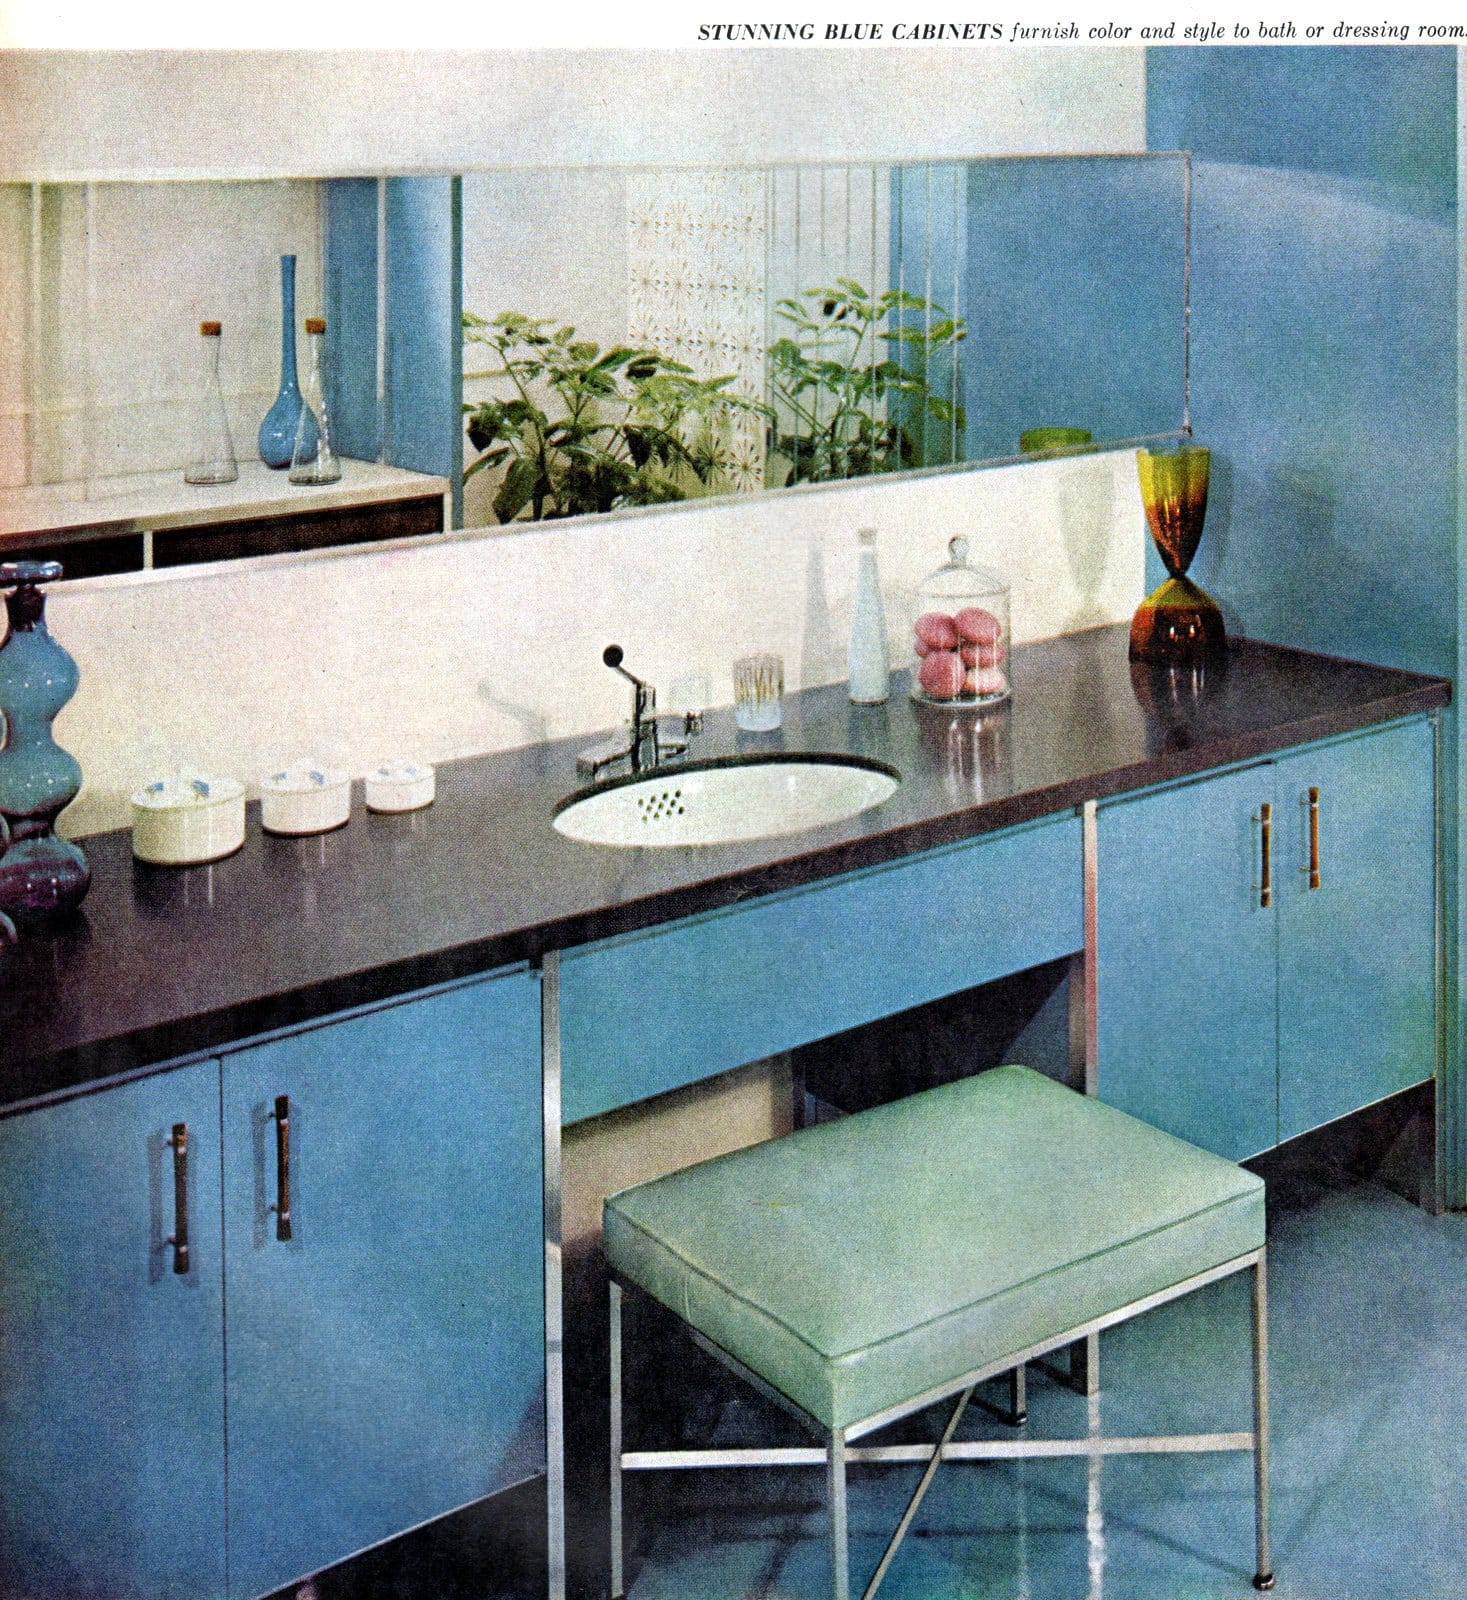 Sleek stylish mid-century modern style blue bathroom